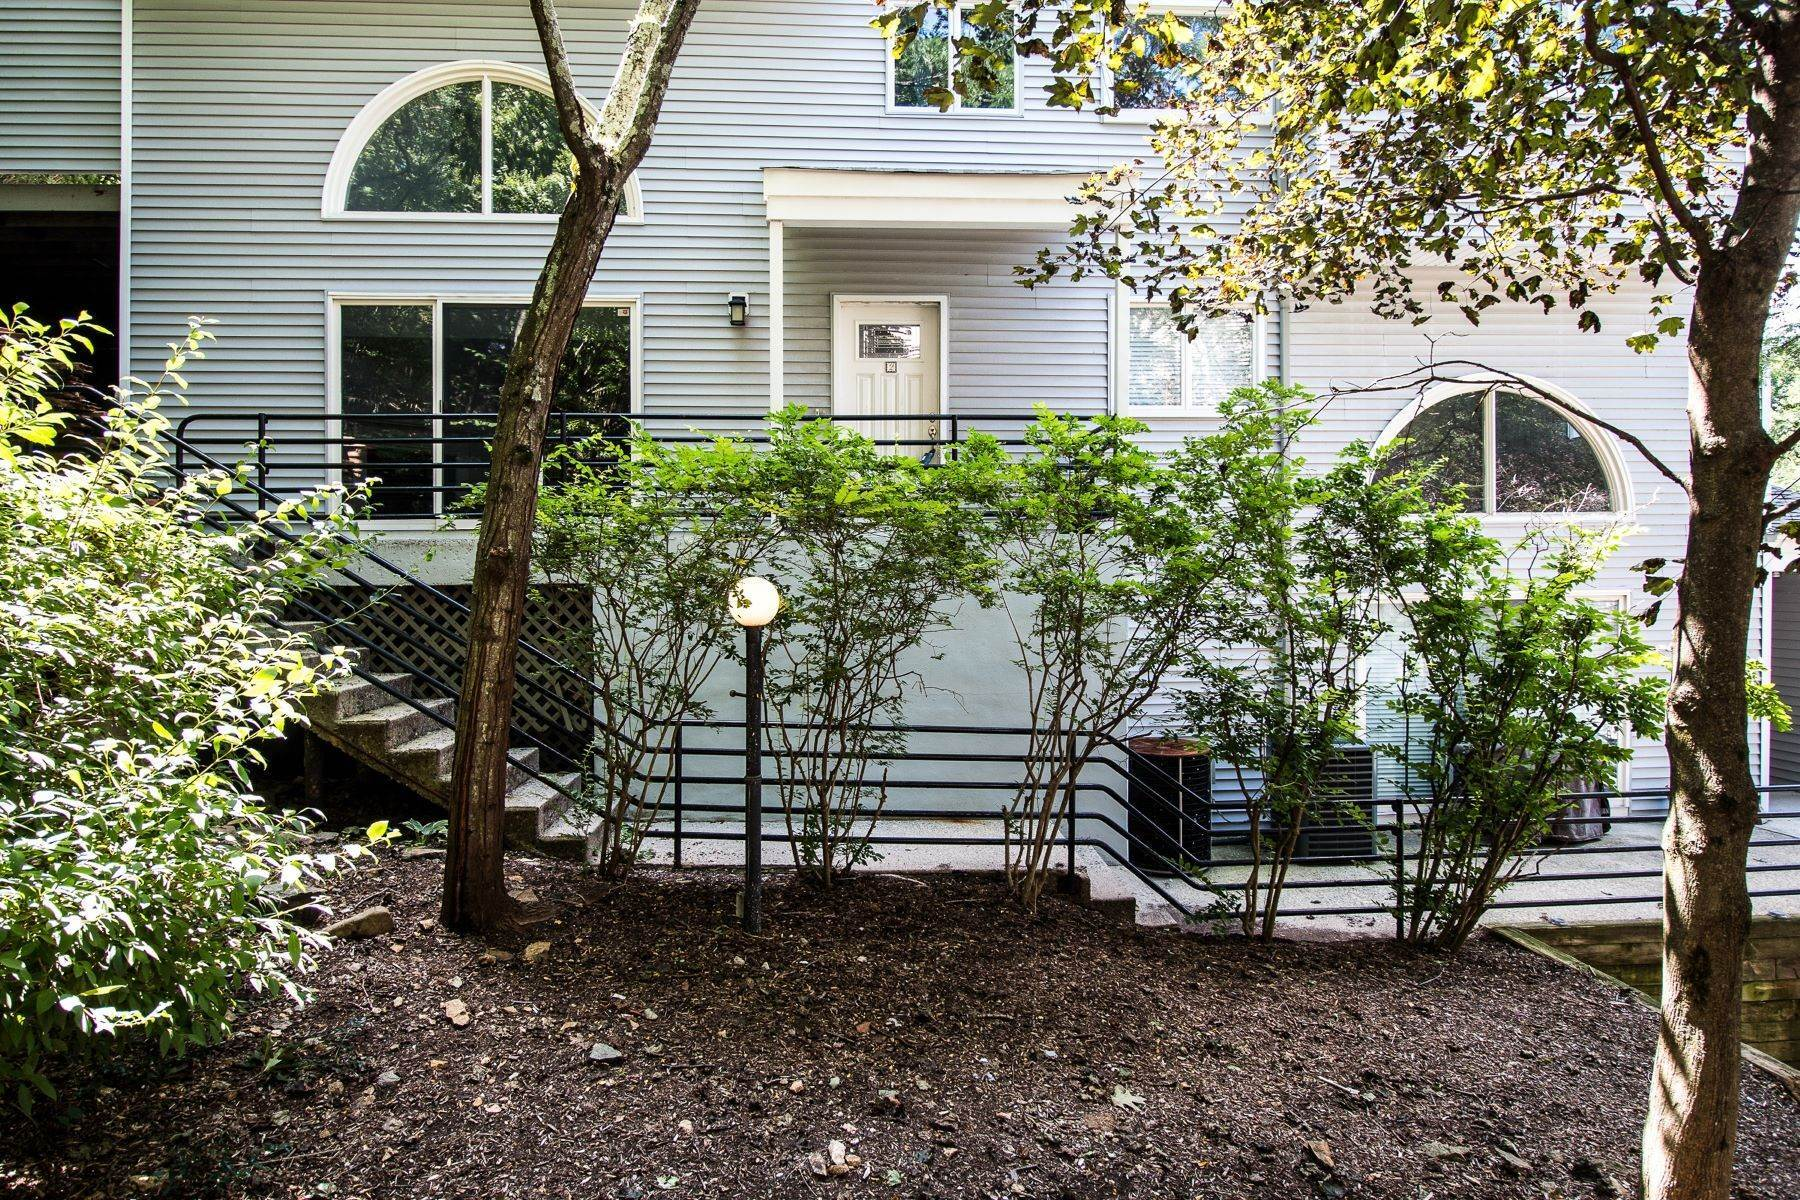 townhouses for Sale at Spacious End Unit Townhouse 44 Chestnut Street, Unit 2 Morristown, New Jersey 07960 United States